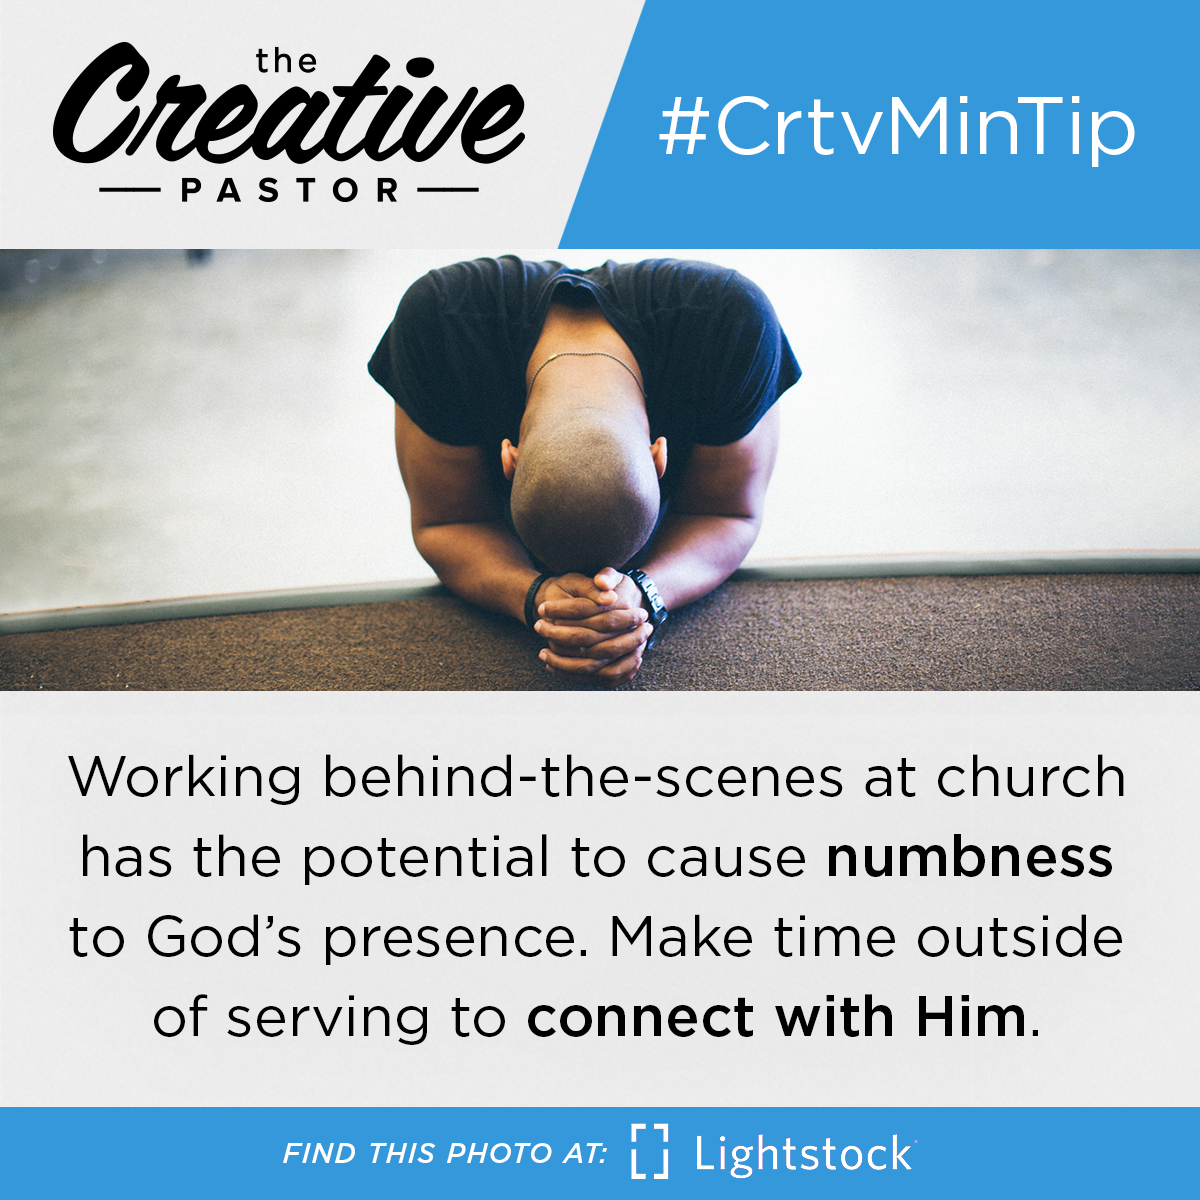 Working behind-the-scenes at church has the potential to cause numbness to God's presence. Make time outside of serving to connect with Him.